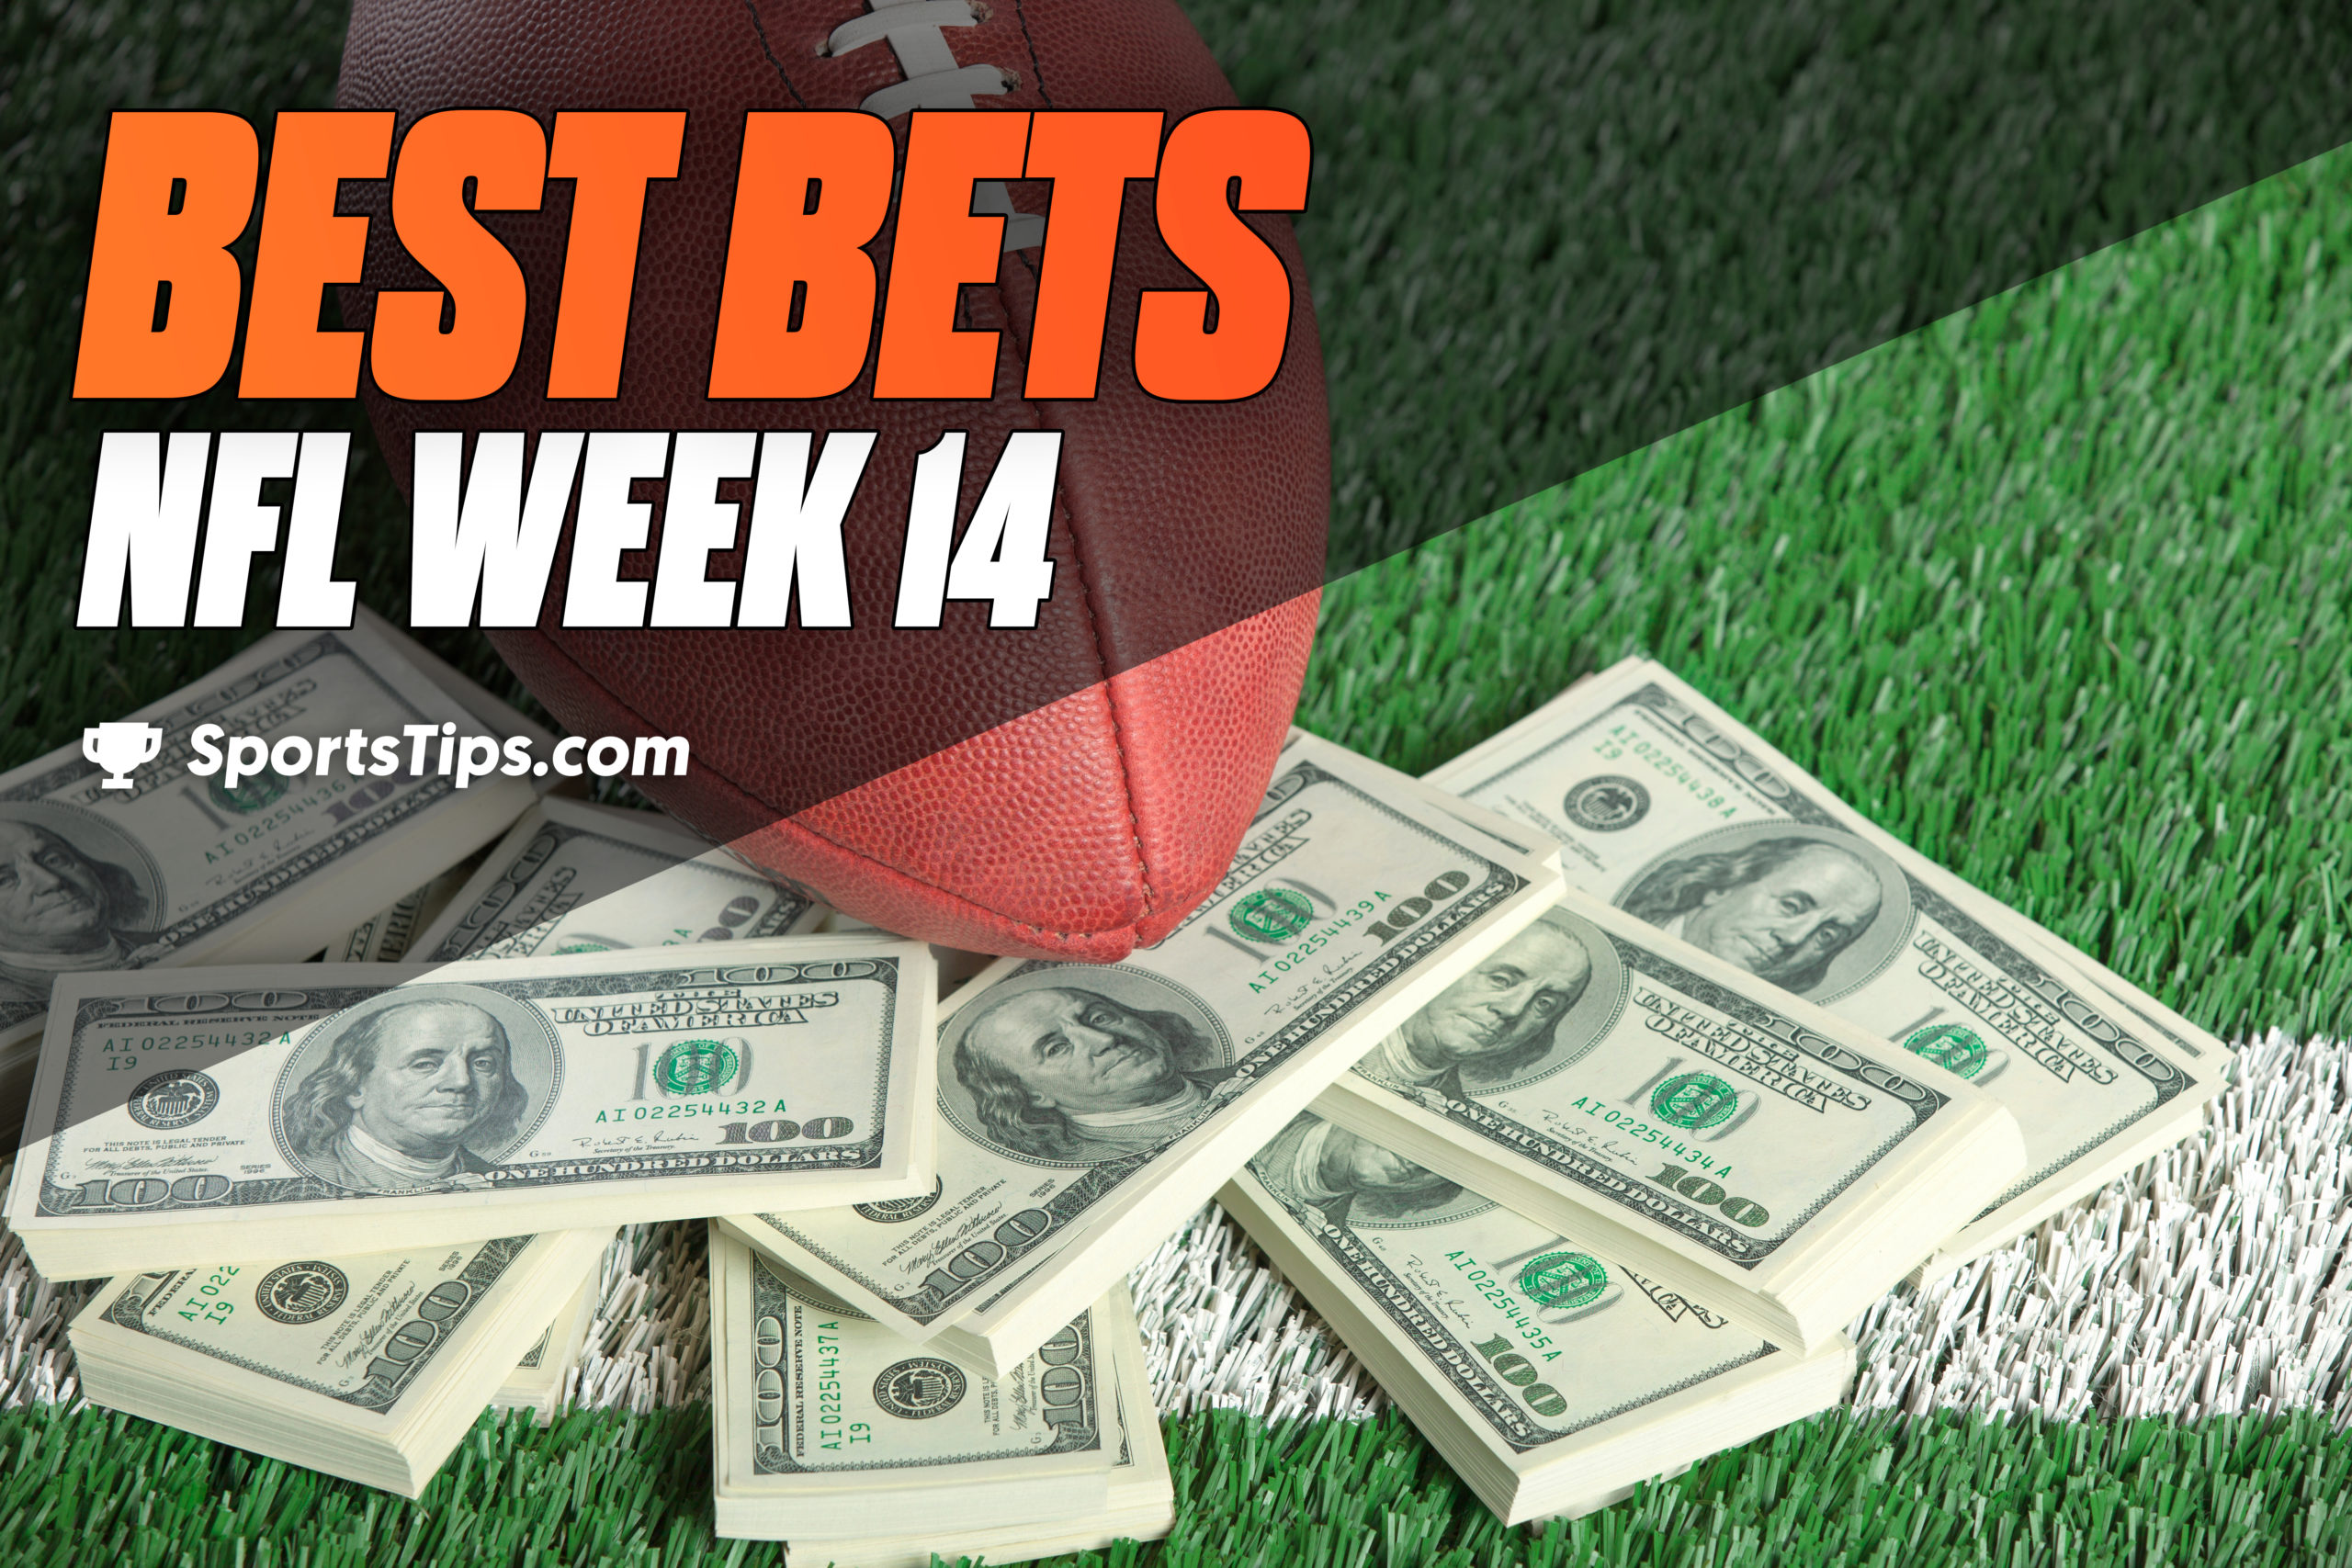 SportsTips' NFL Best Bets For Week 14